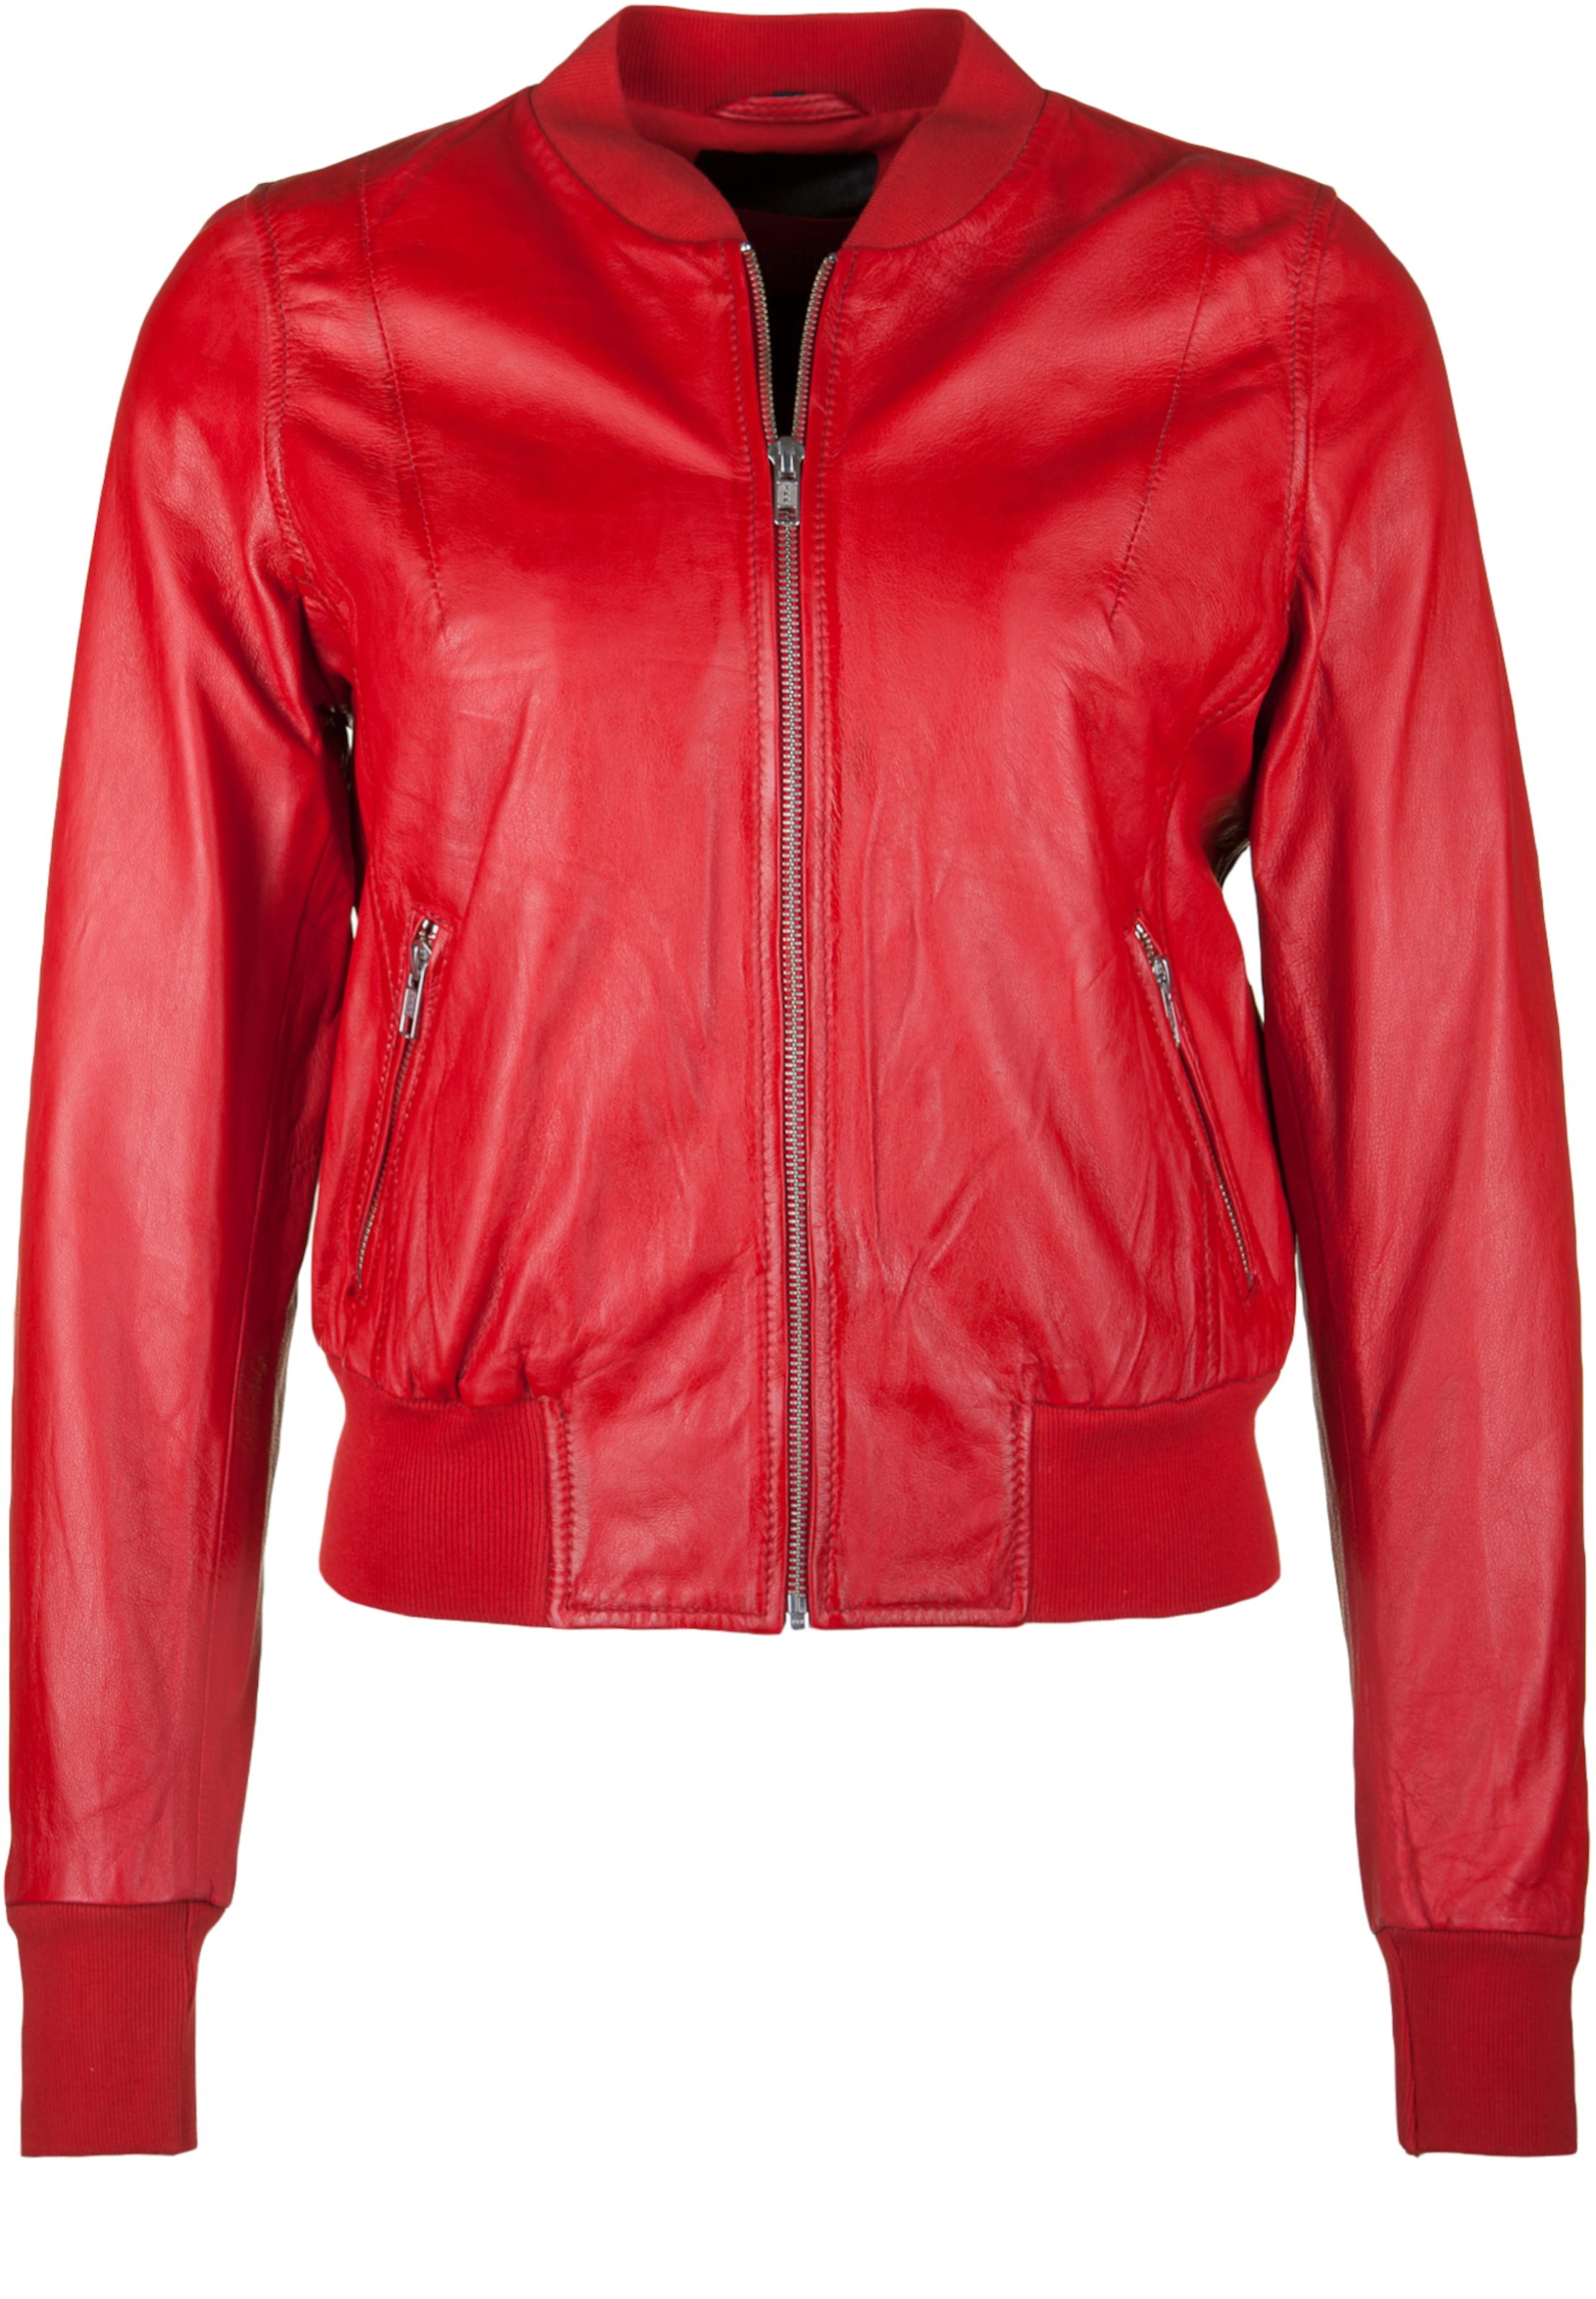 Lederjacke 'HARLEM NIGHTS'